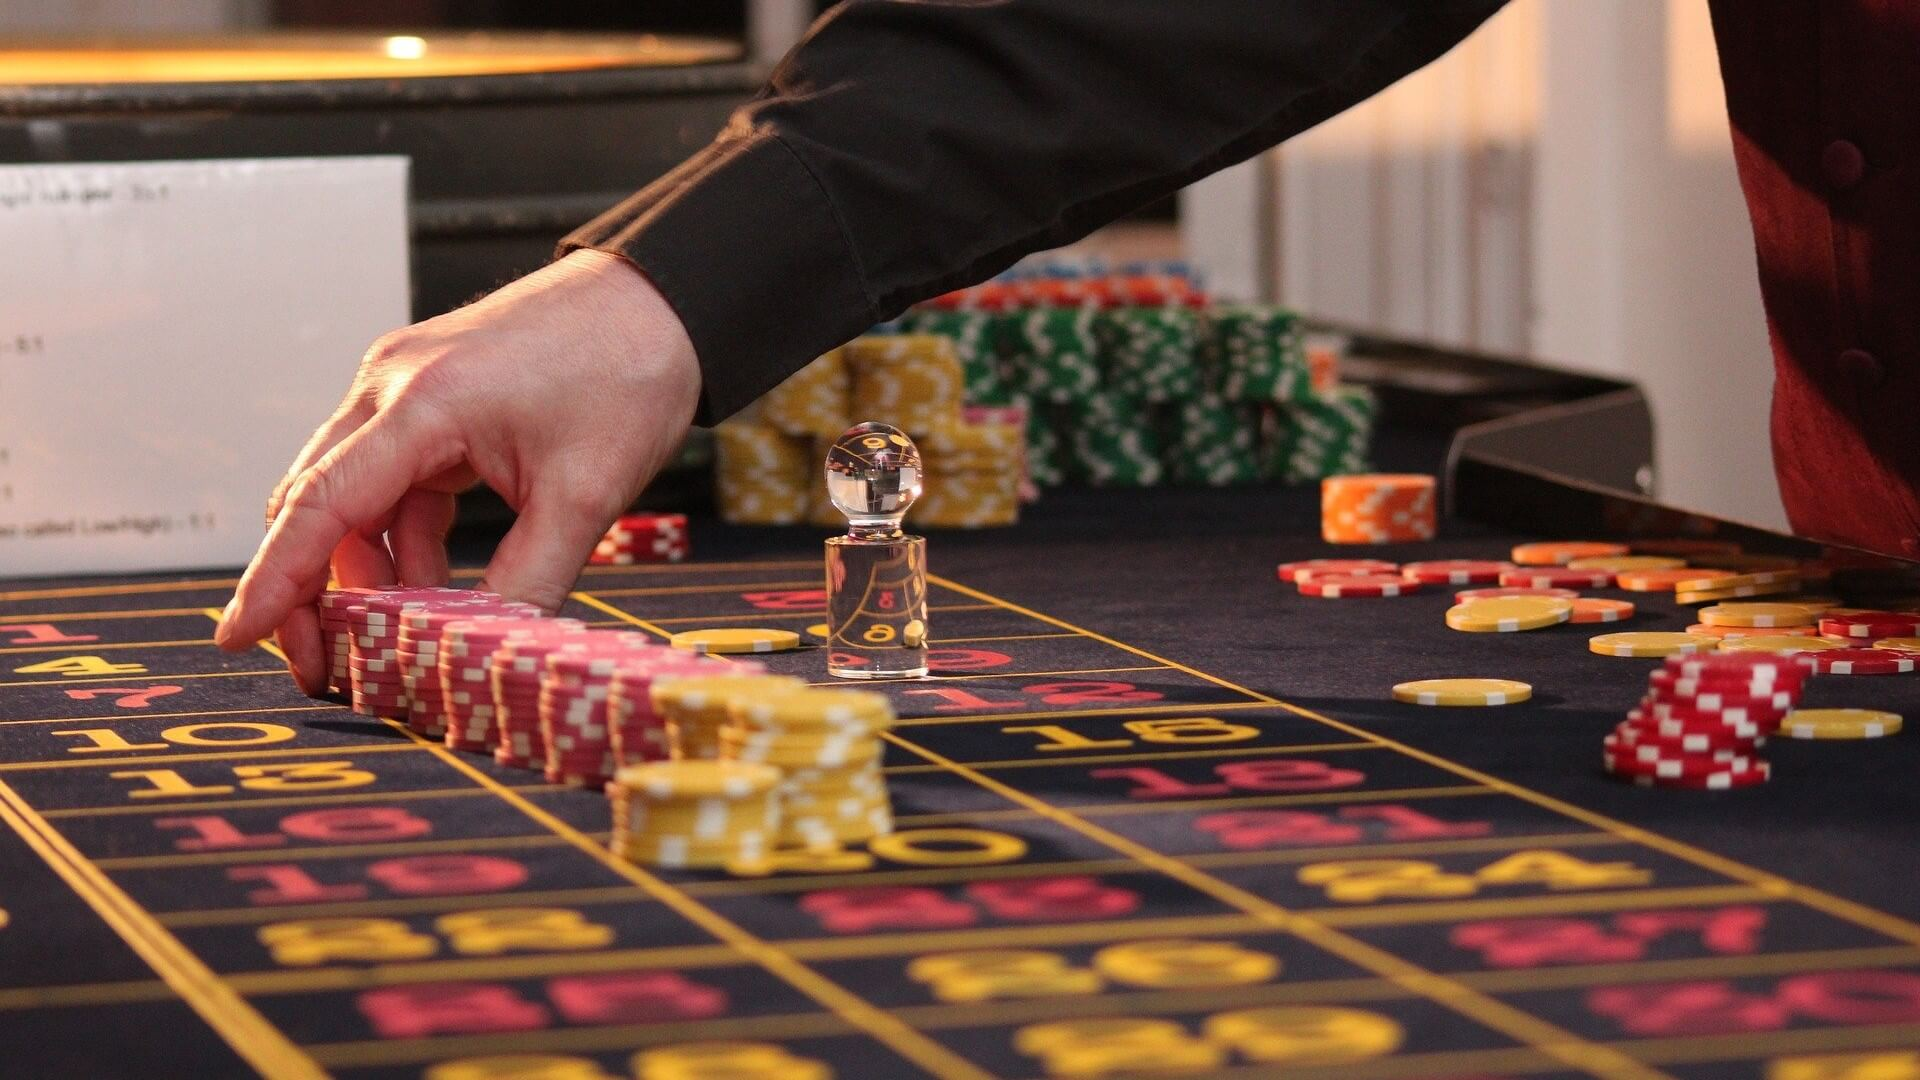 Central Europeans moving to online casinos amid COVID restrictions